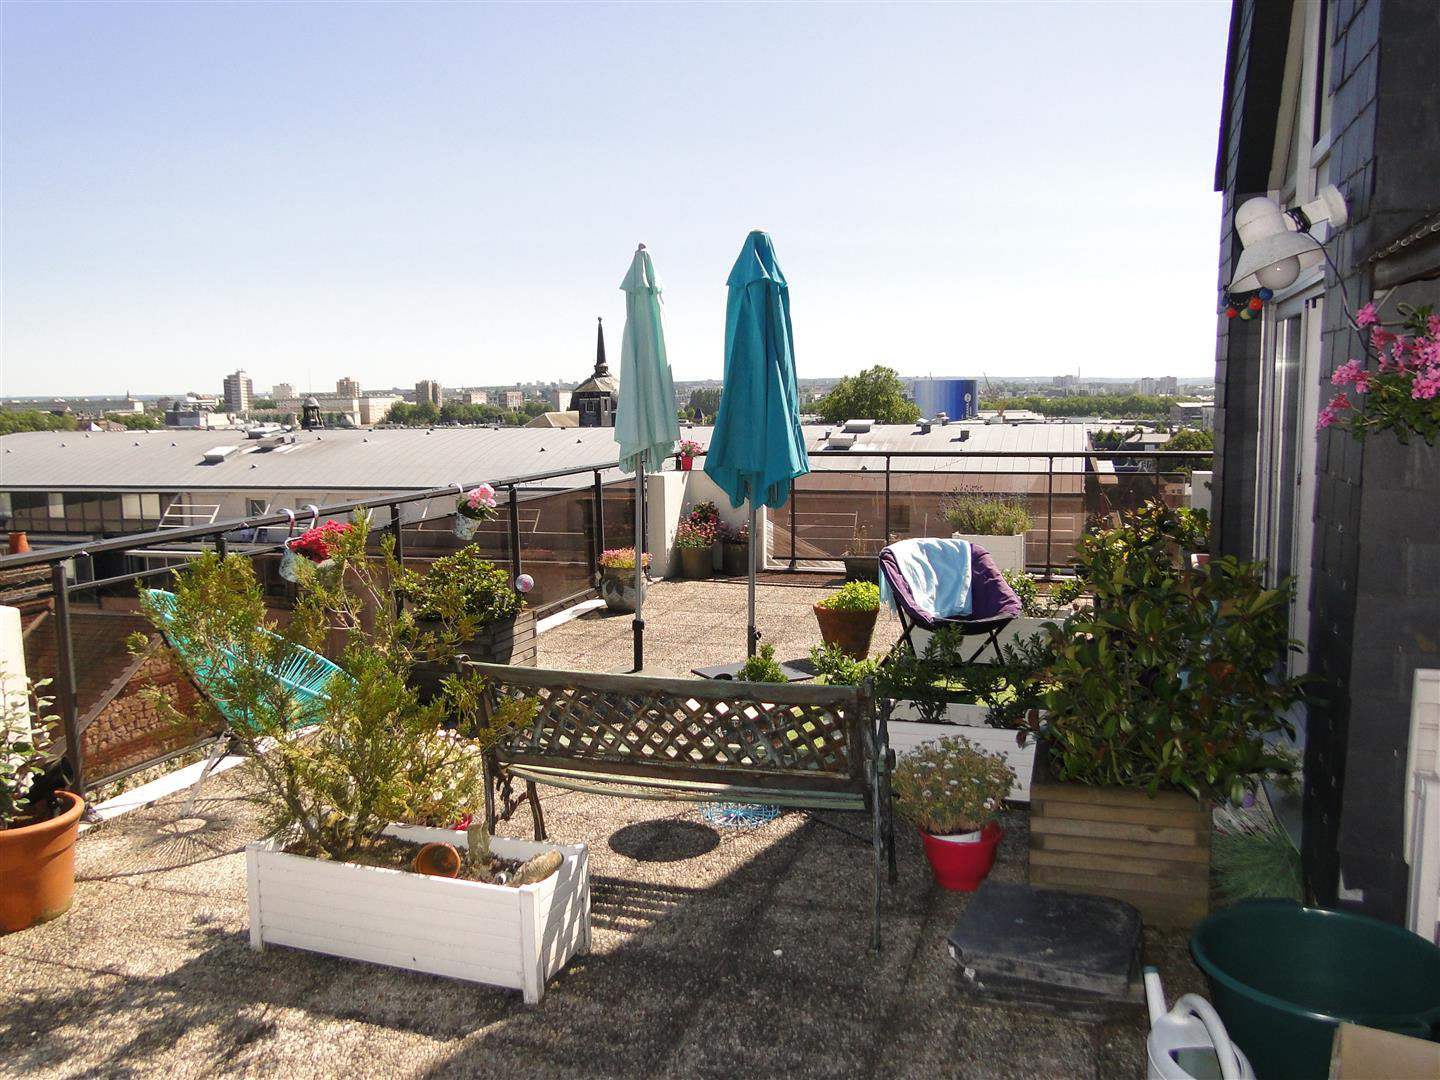 Sale Apartment - Rouen Saint-Gervais